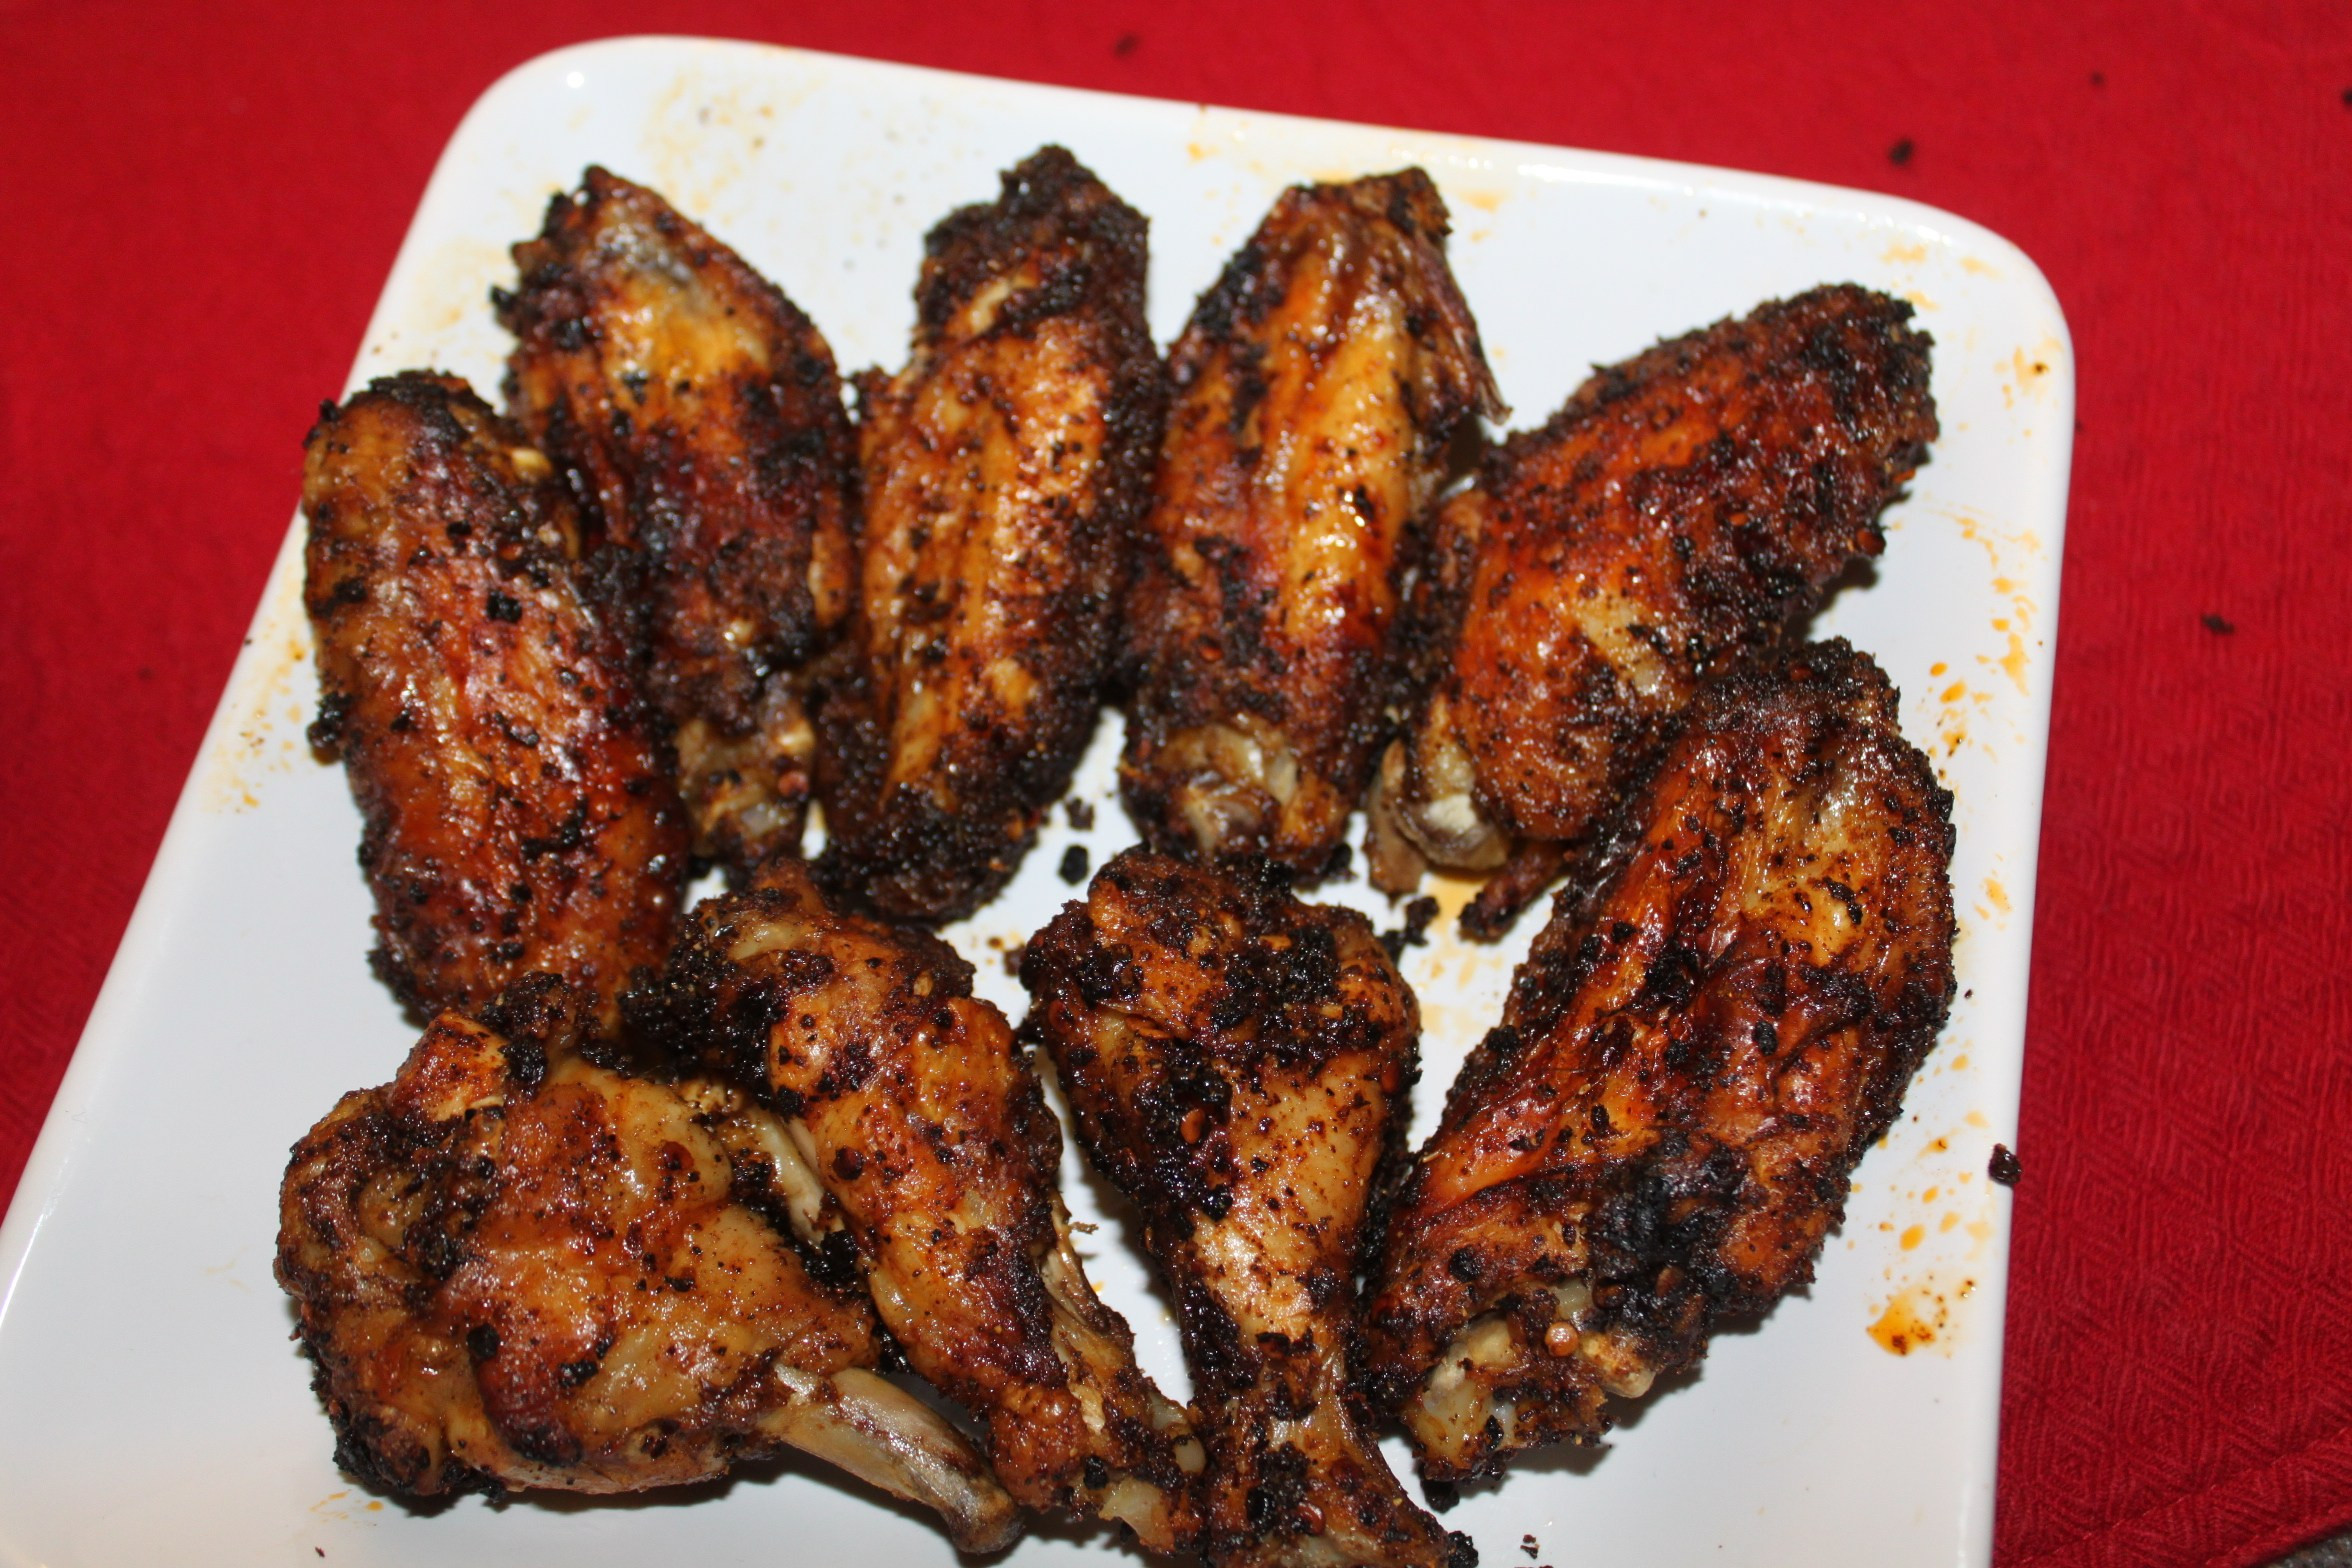 Baked Chicken Wings Recipe  BAKED Chicken Wings Recipe With Chipotle Dry Rub